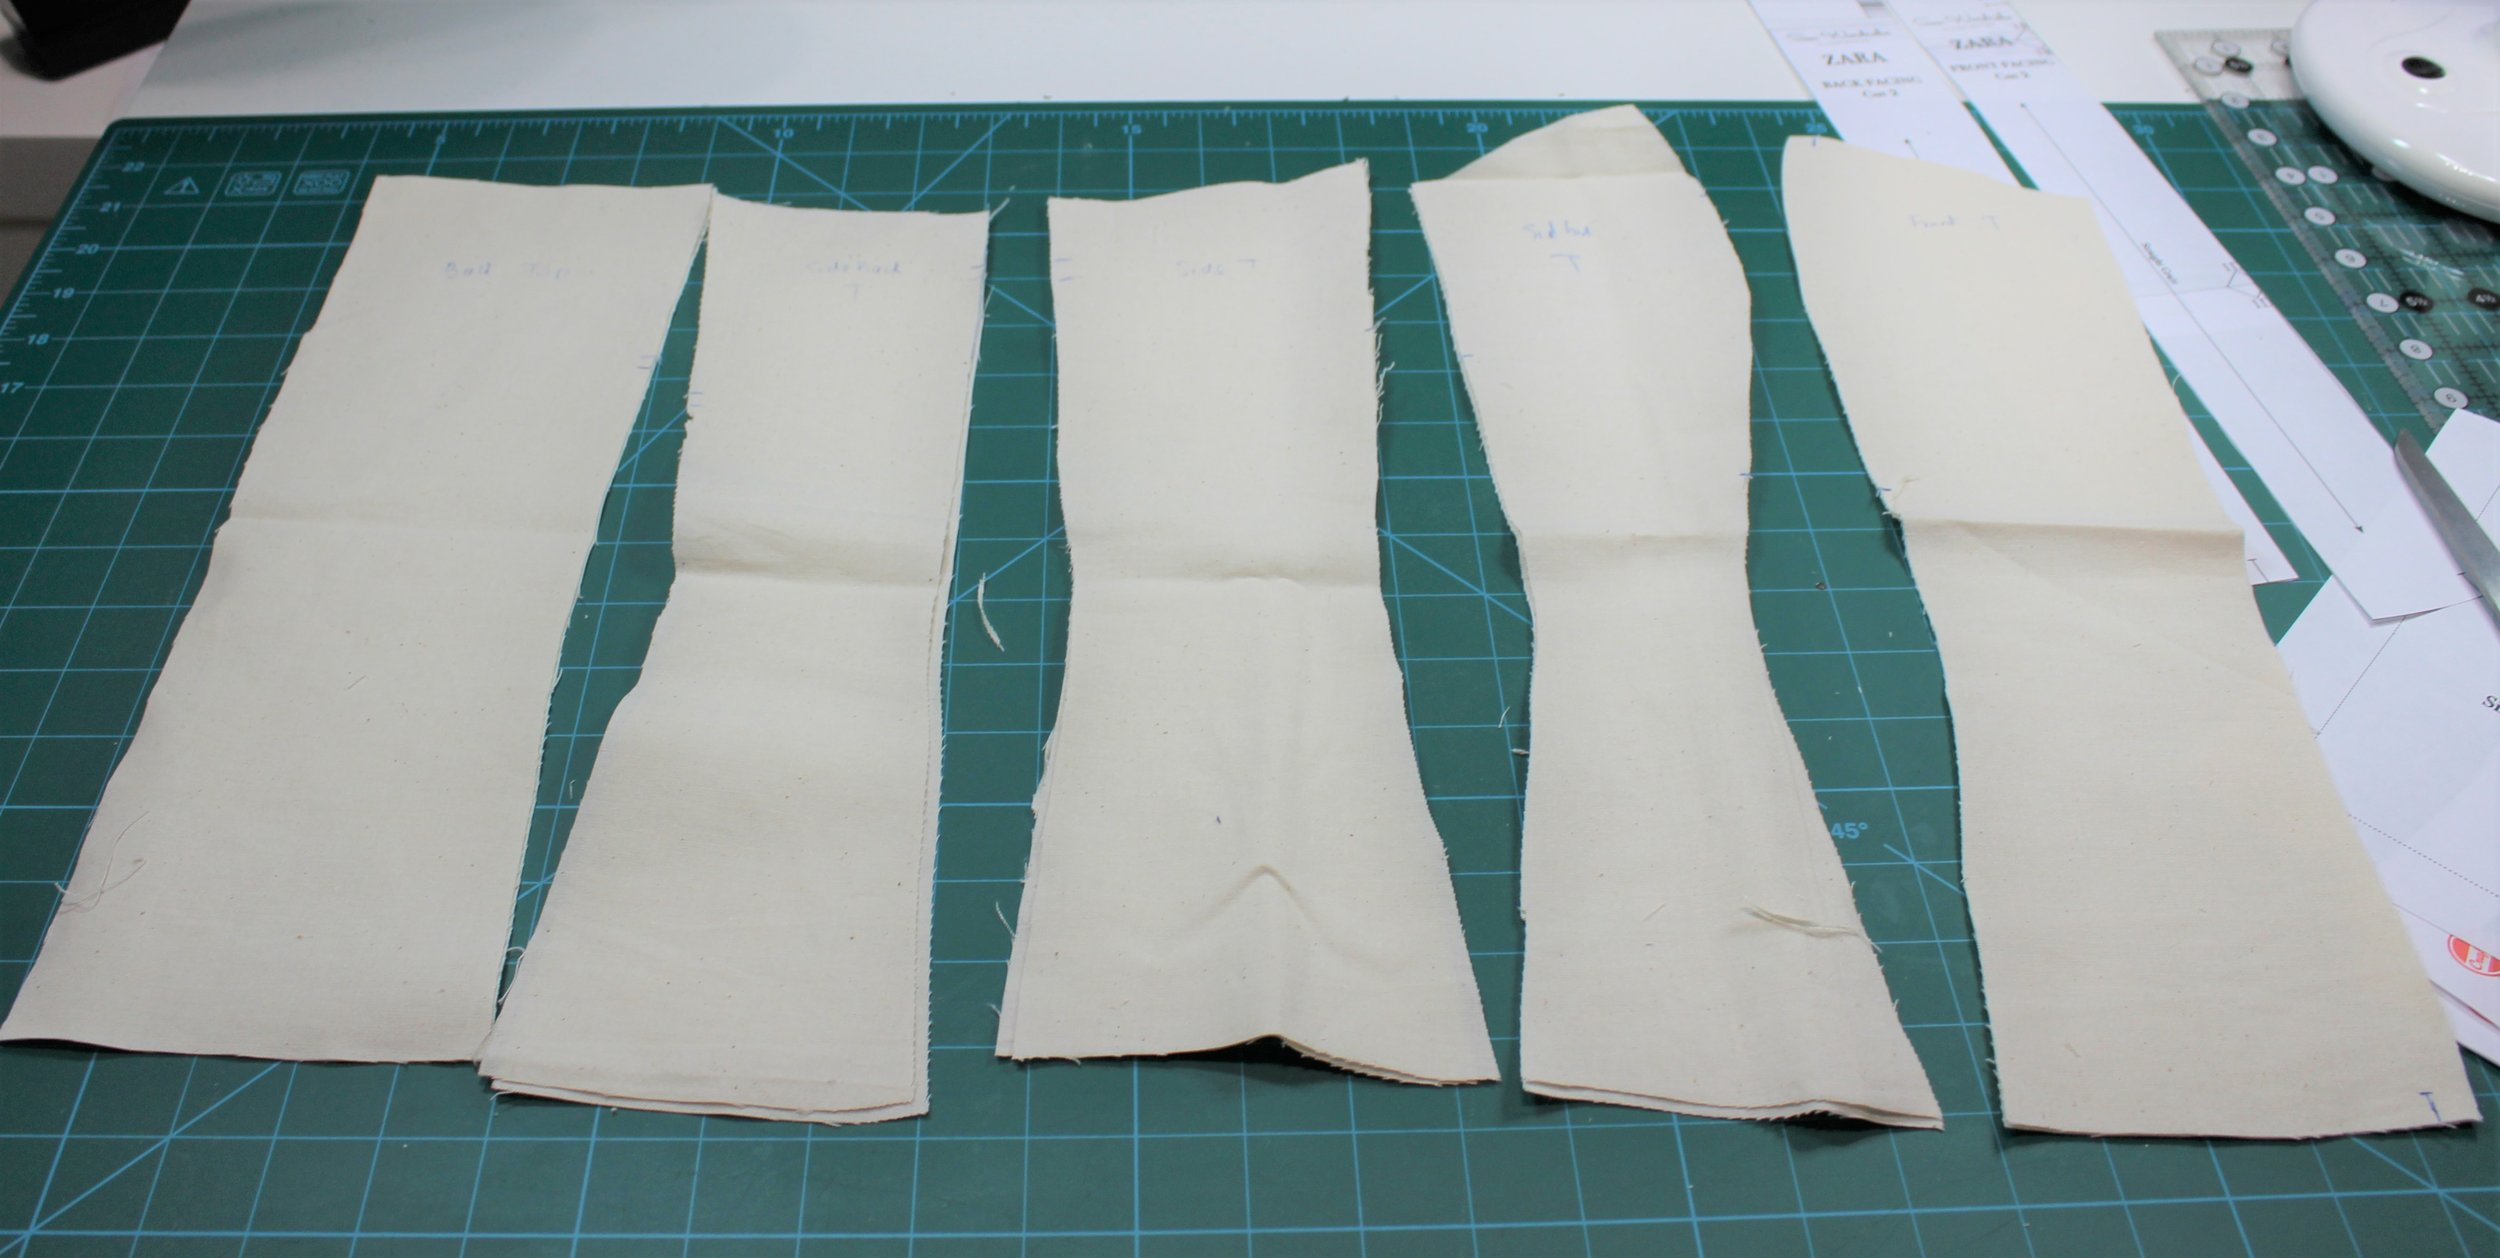 All the pattern pieces cut in a stiff calico and labelled including marking top.